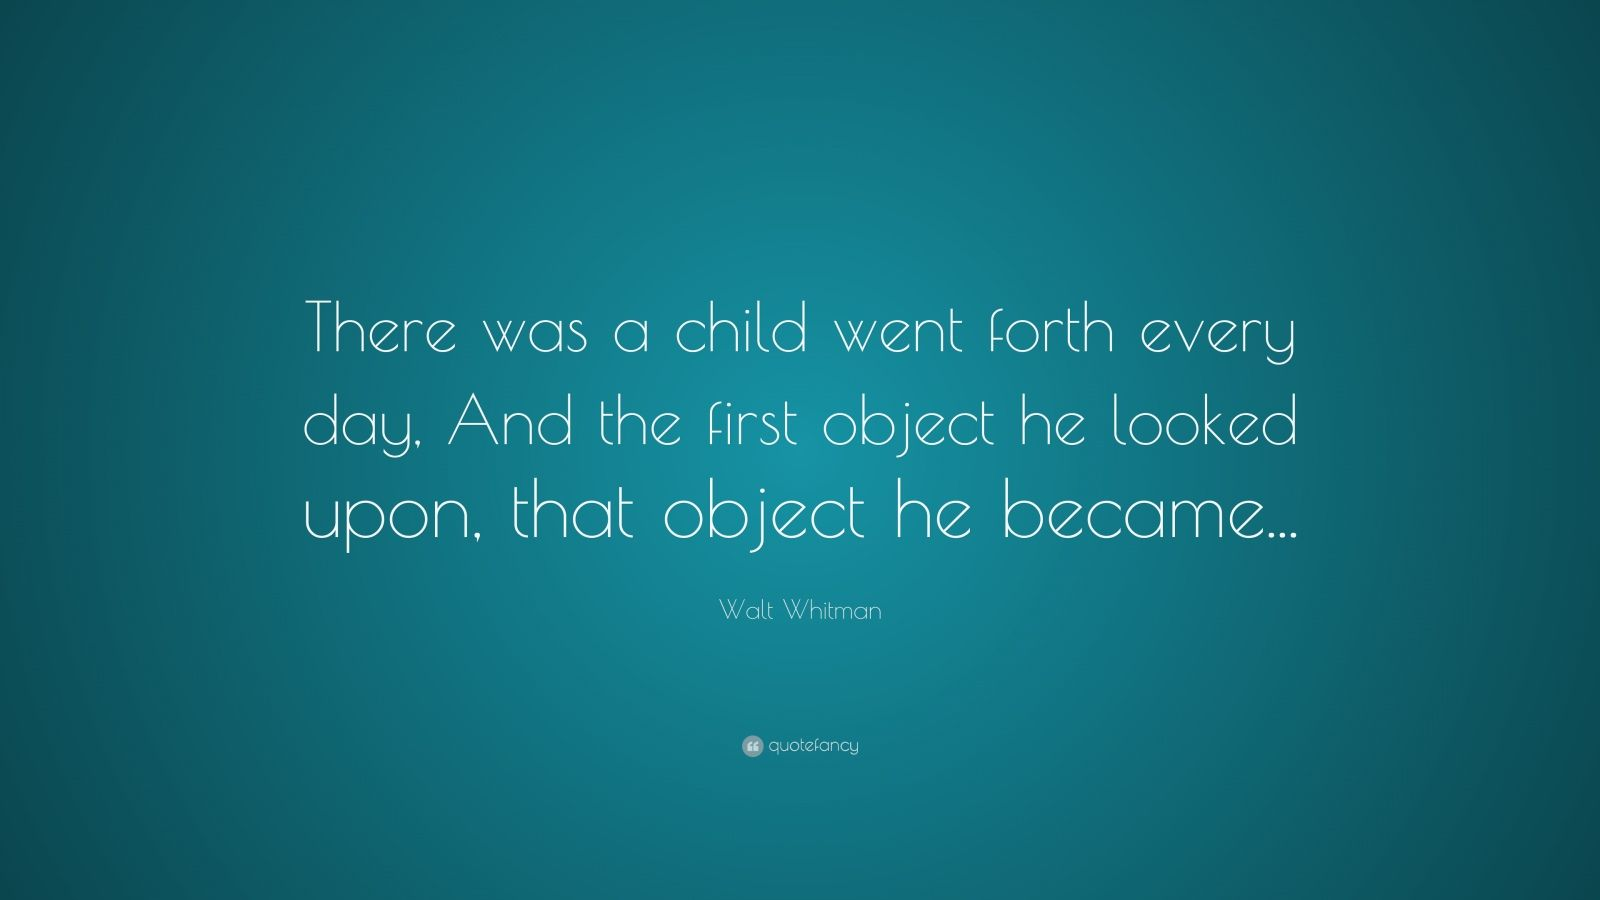 """Walt Whitman Quote: """"There was a child went forth every day, And the first object he looked upon, that object he became..."""""""